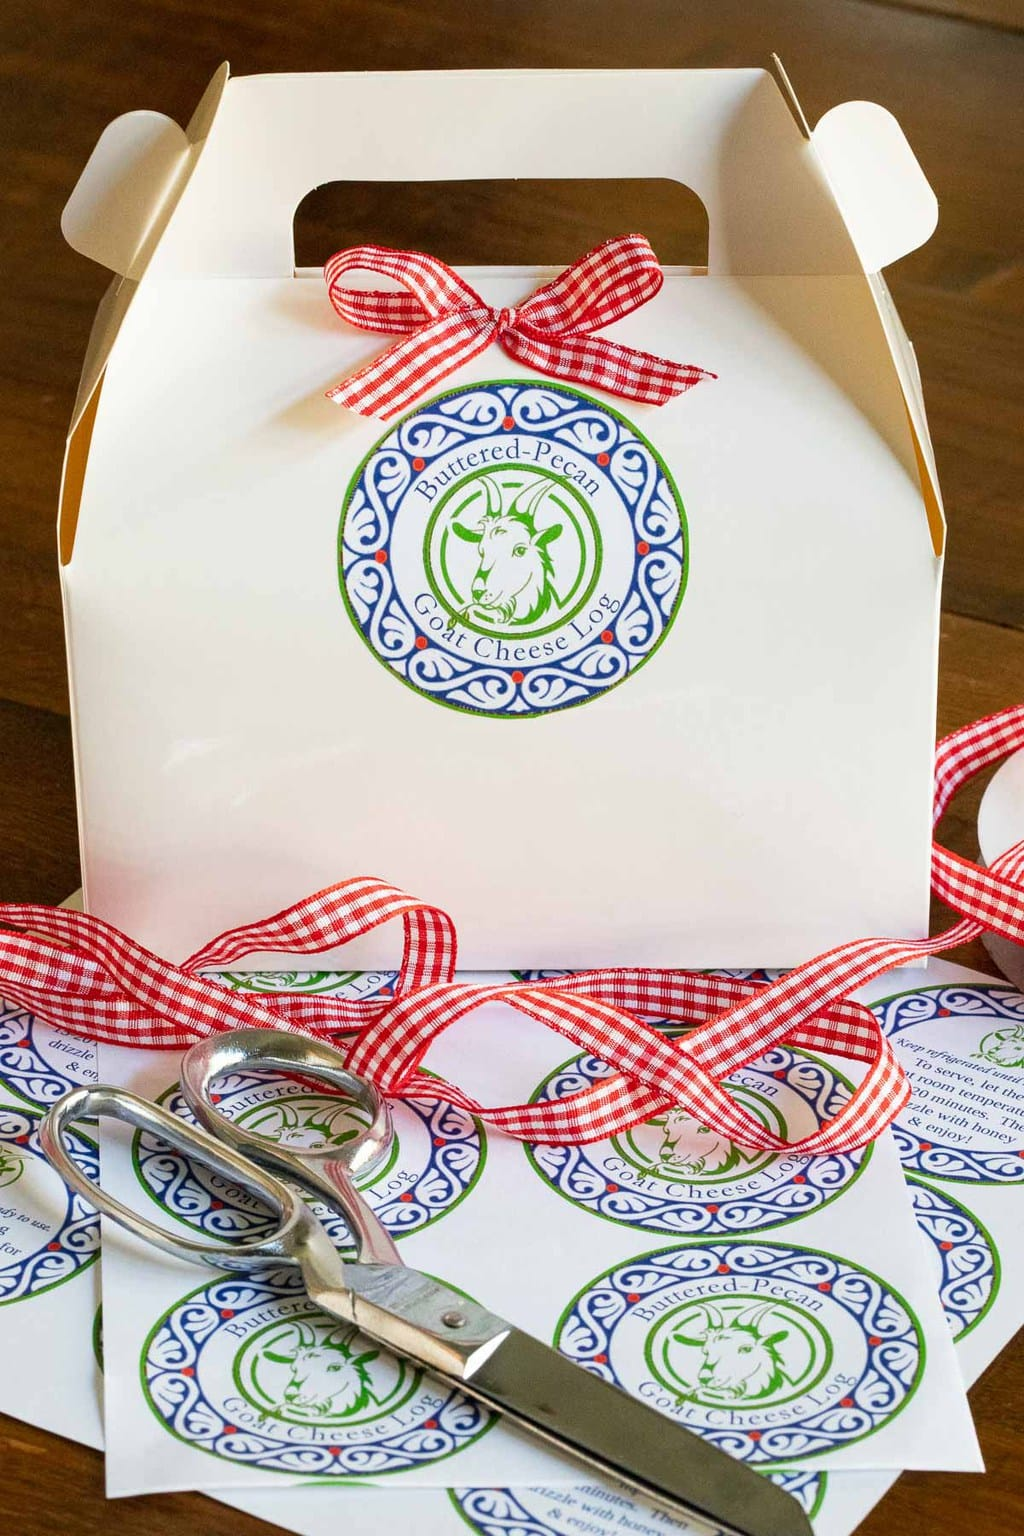 A vertical photo of custom Buttered Pecan Goat Cheese Log labels and instructions for gift giving. In the background is a white gift box.